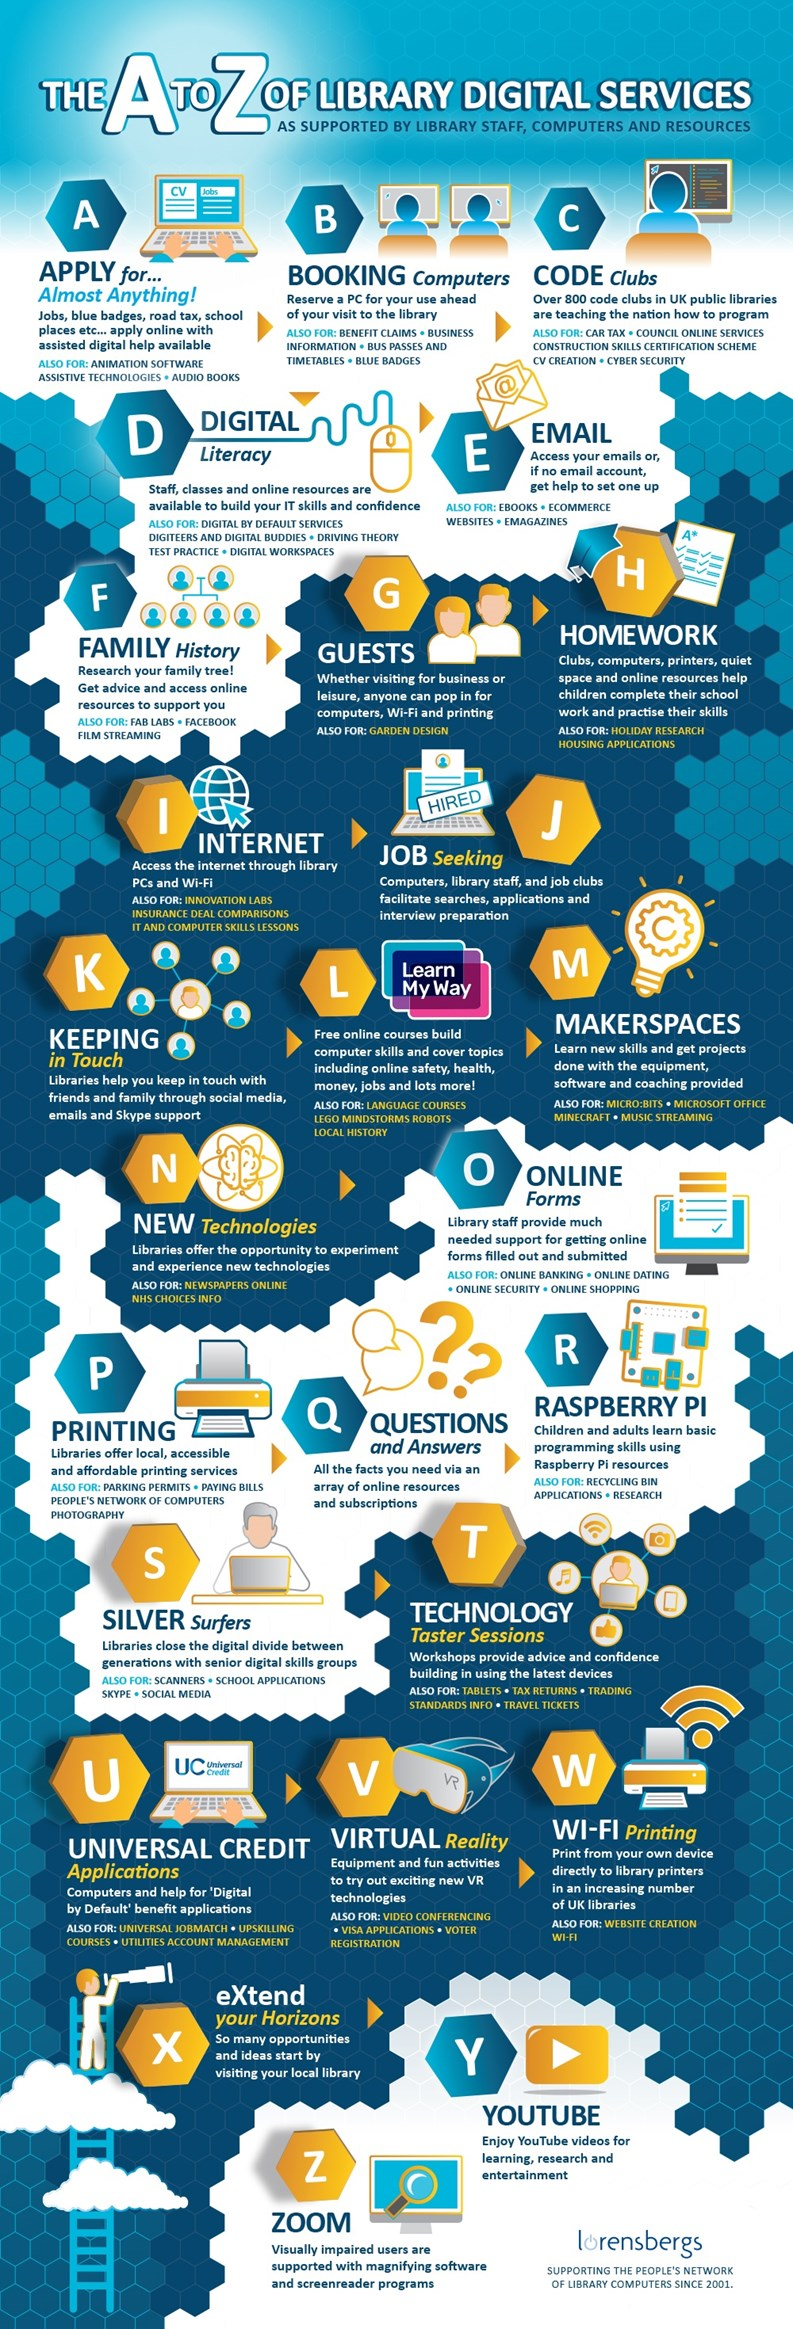 A to Z of Library Digital Services in an Infographic